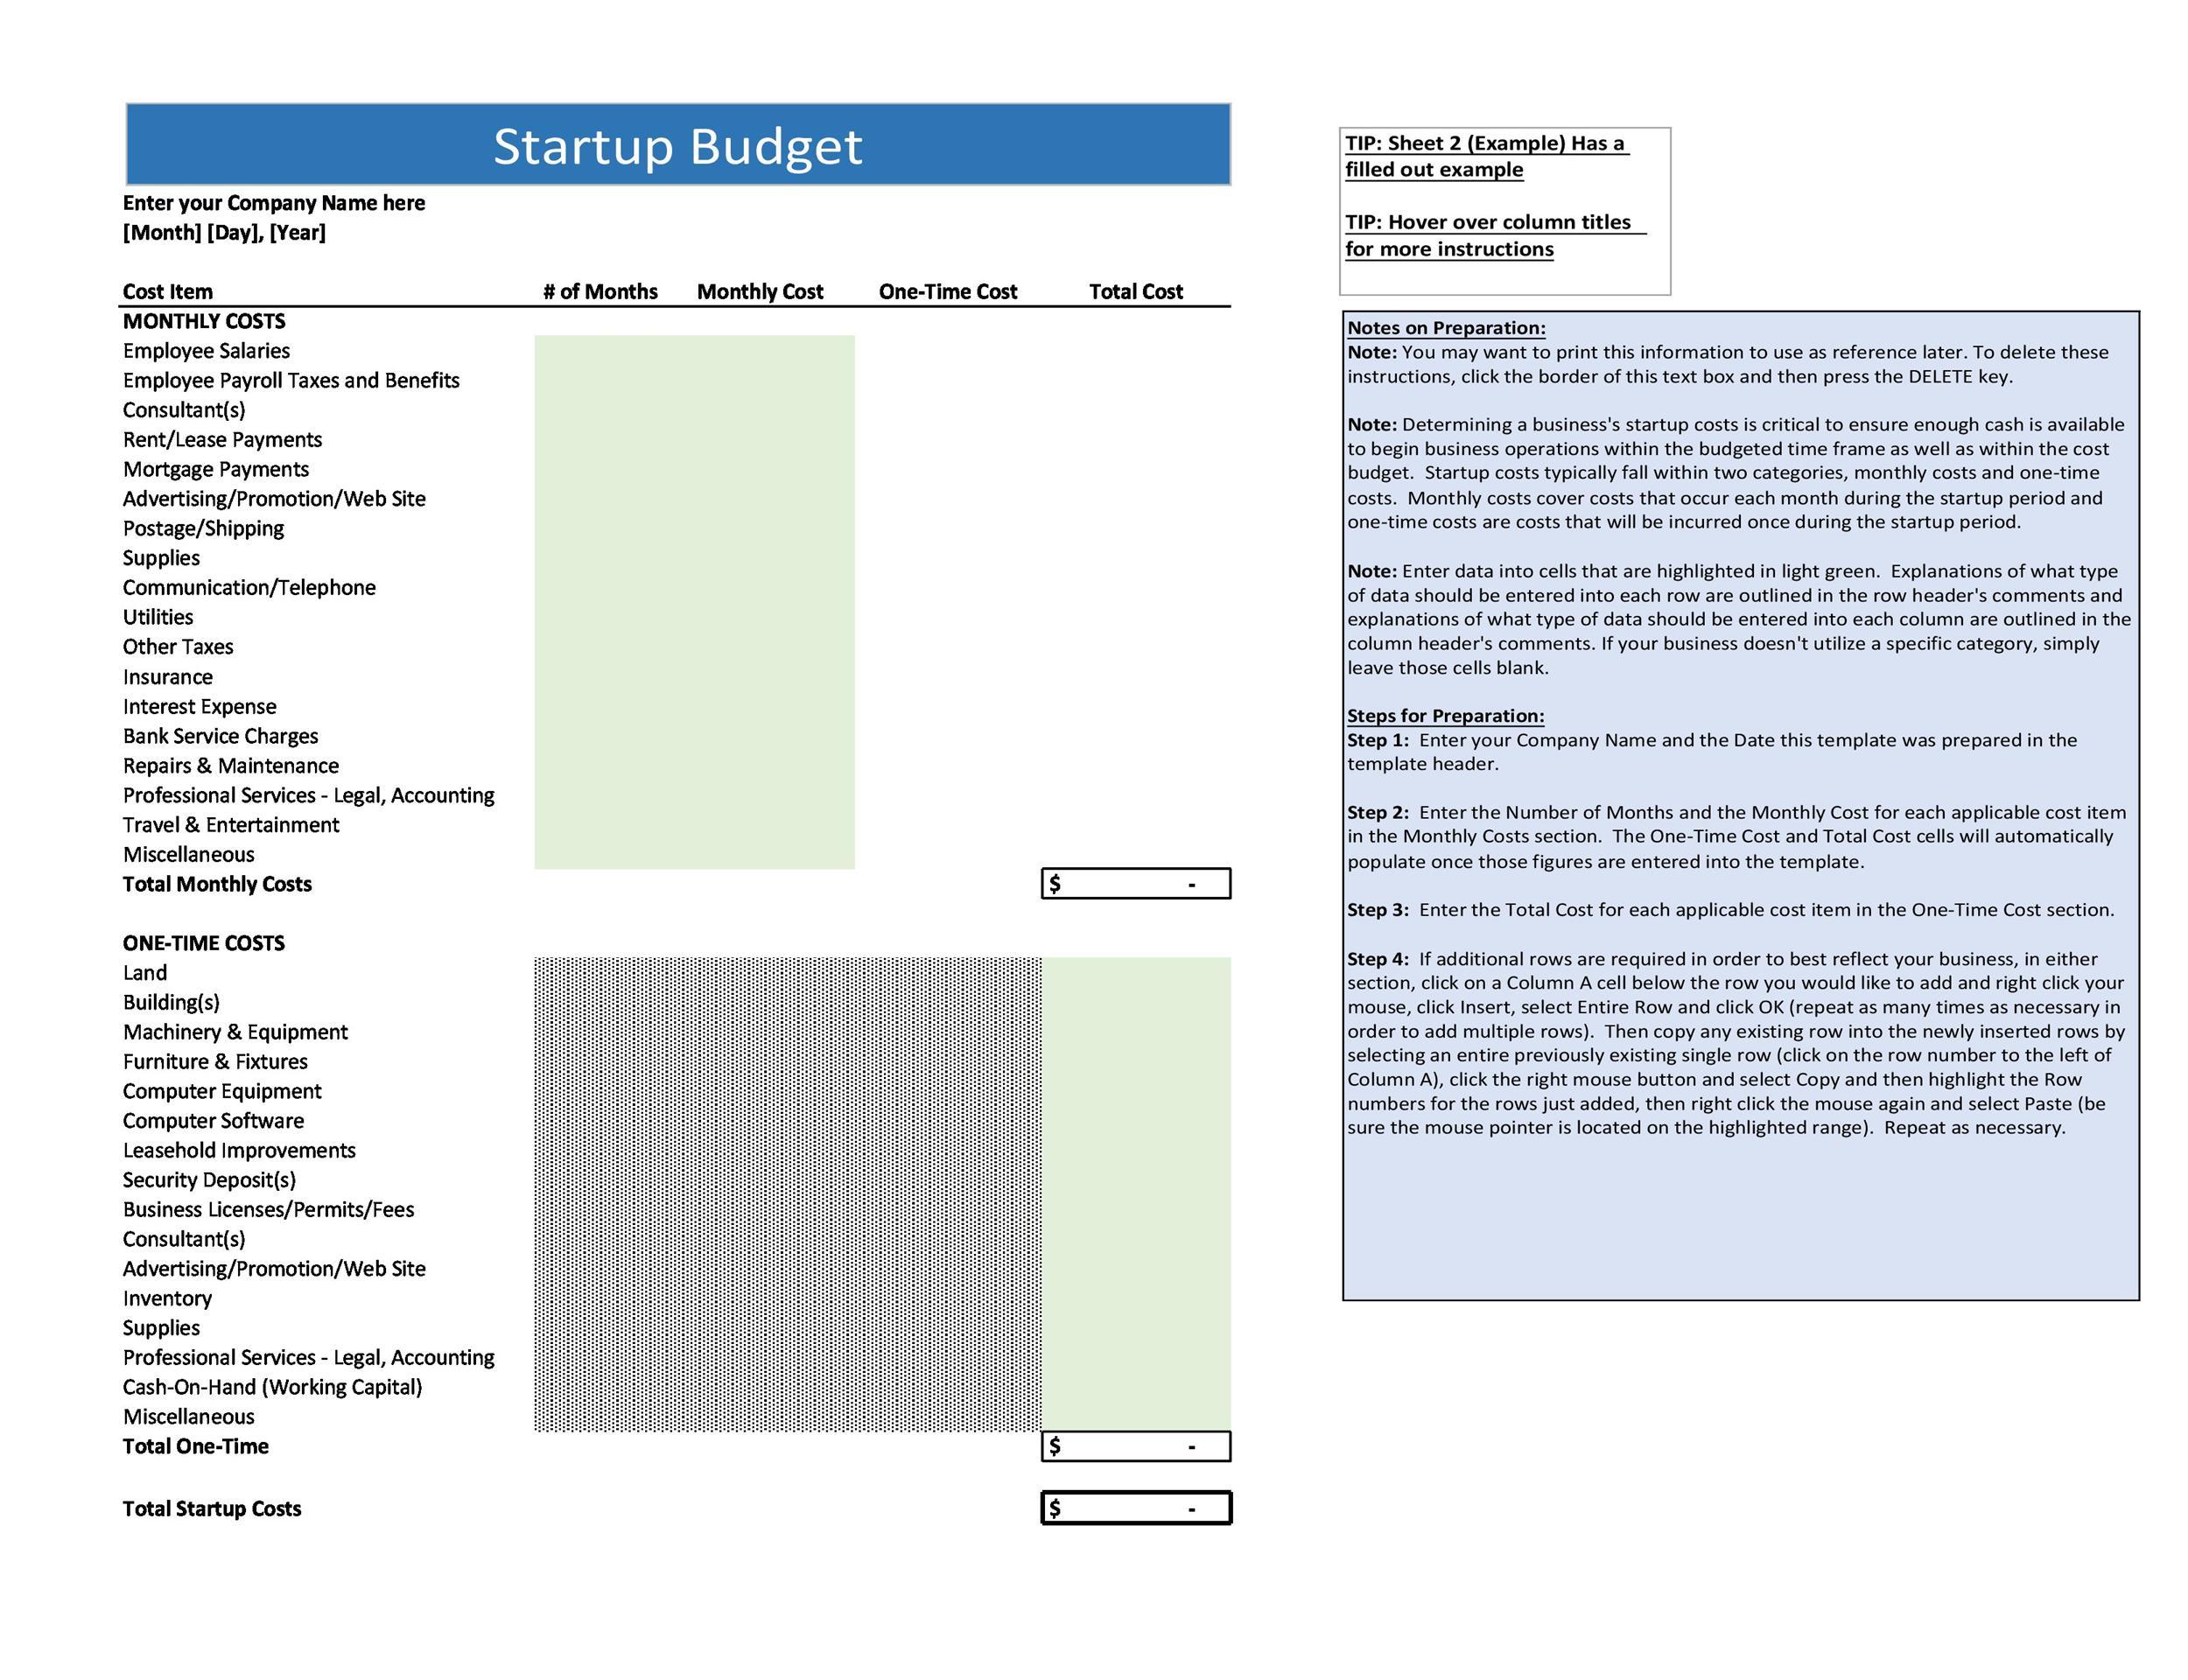 50 Best Startup Budget Templates (Free Download) ᐅ TemplateLab